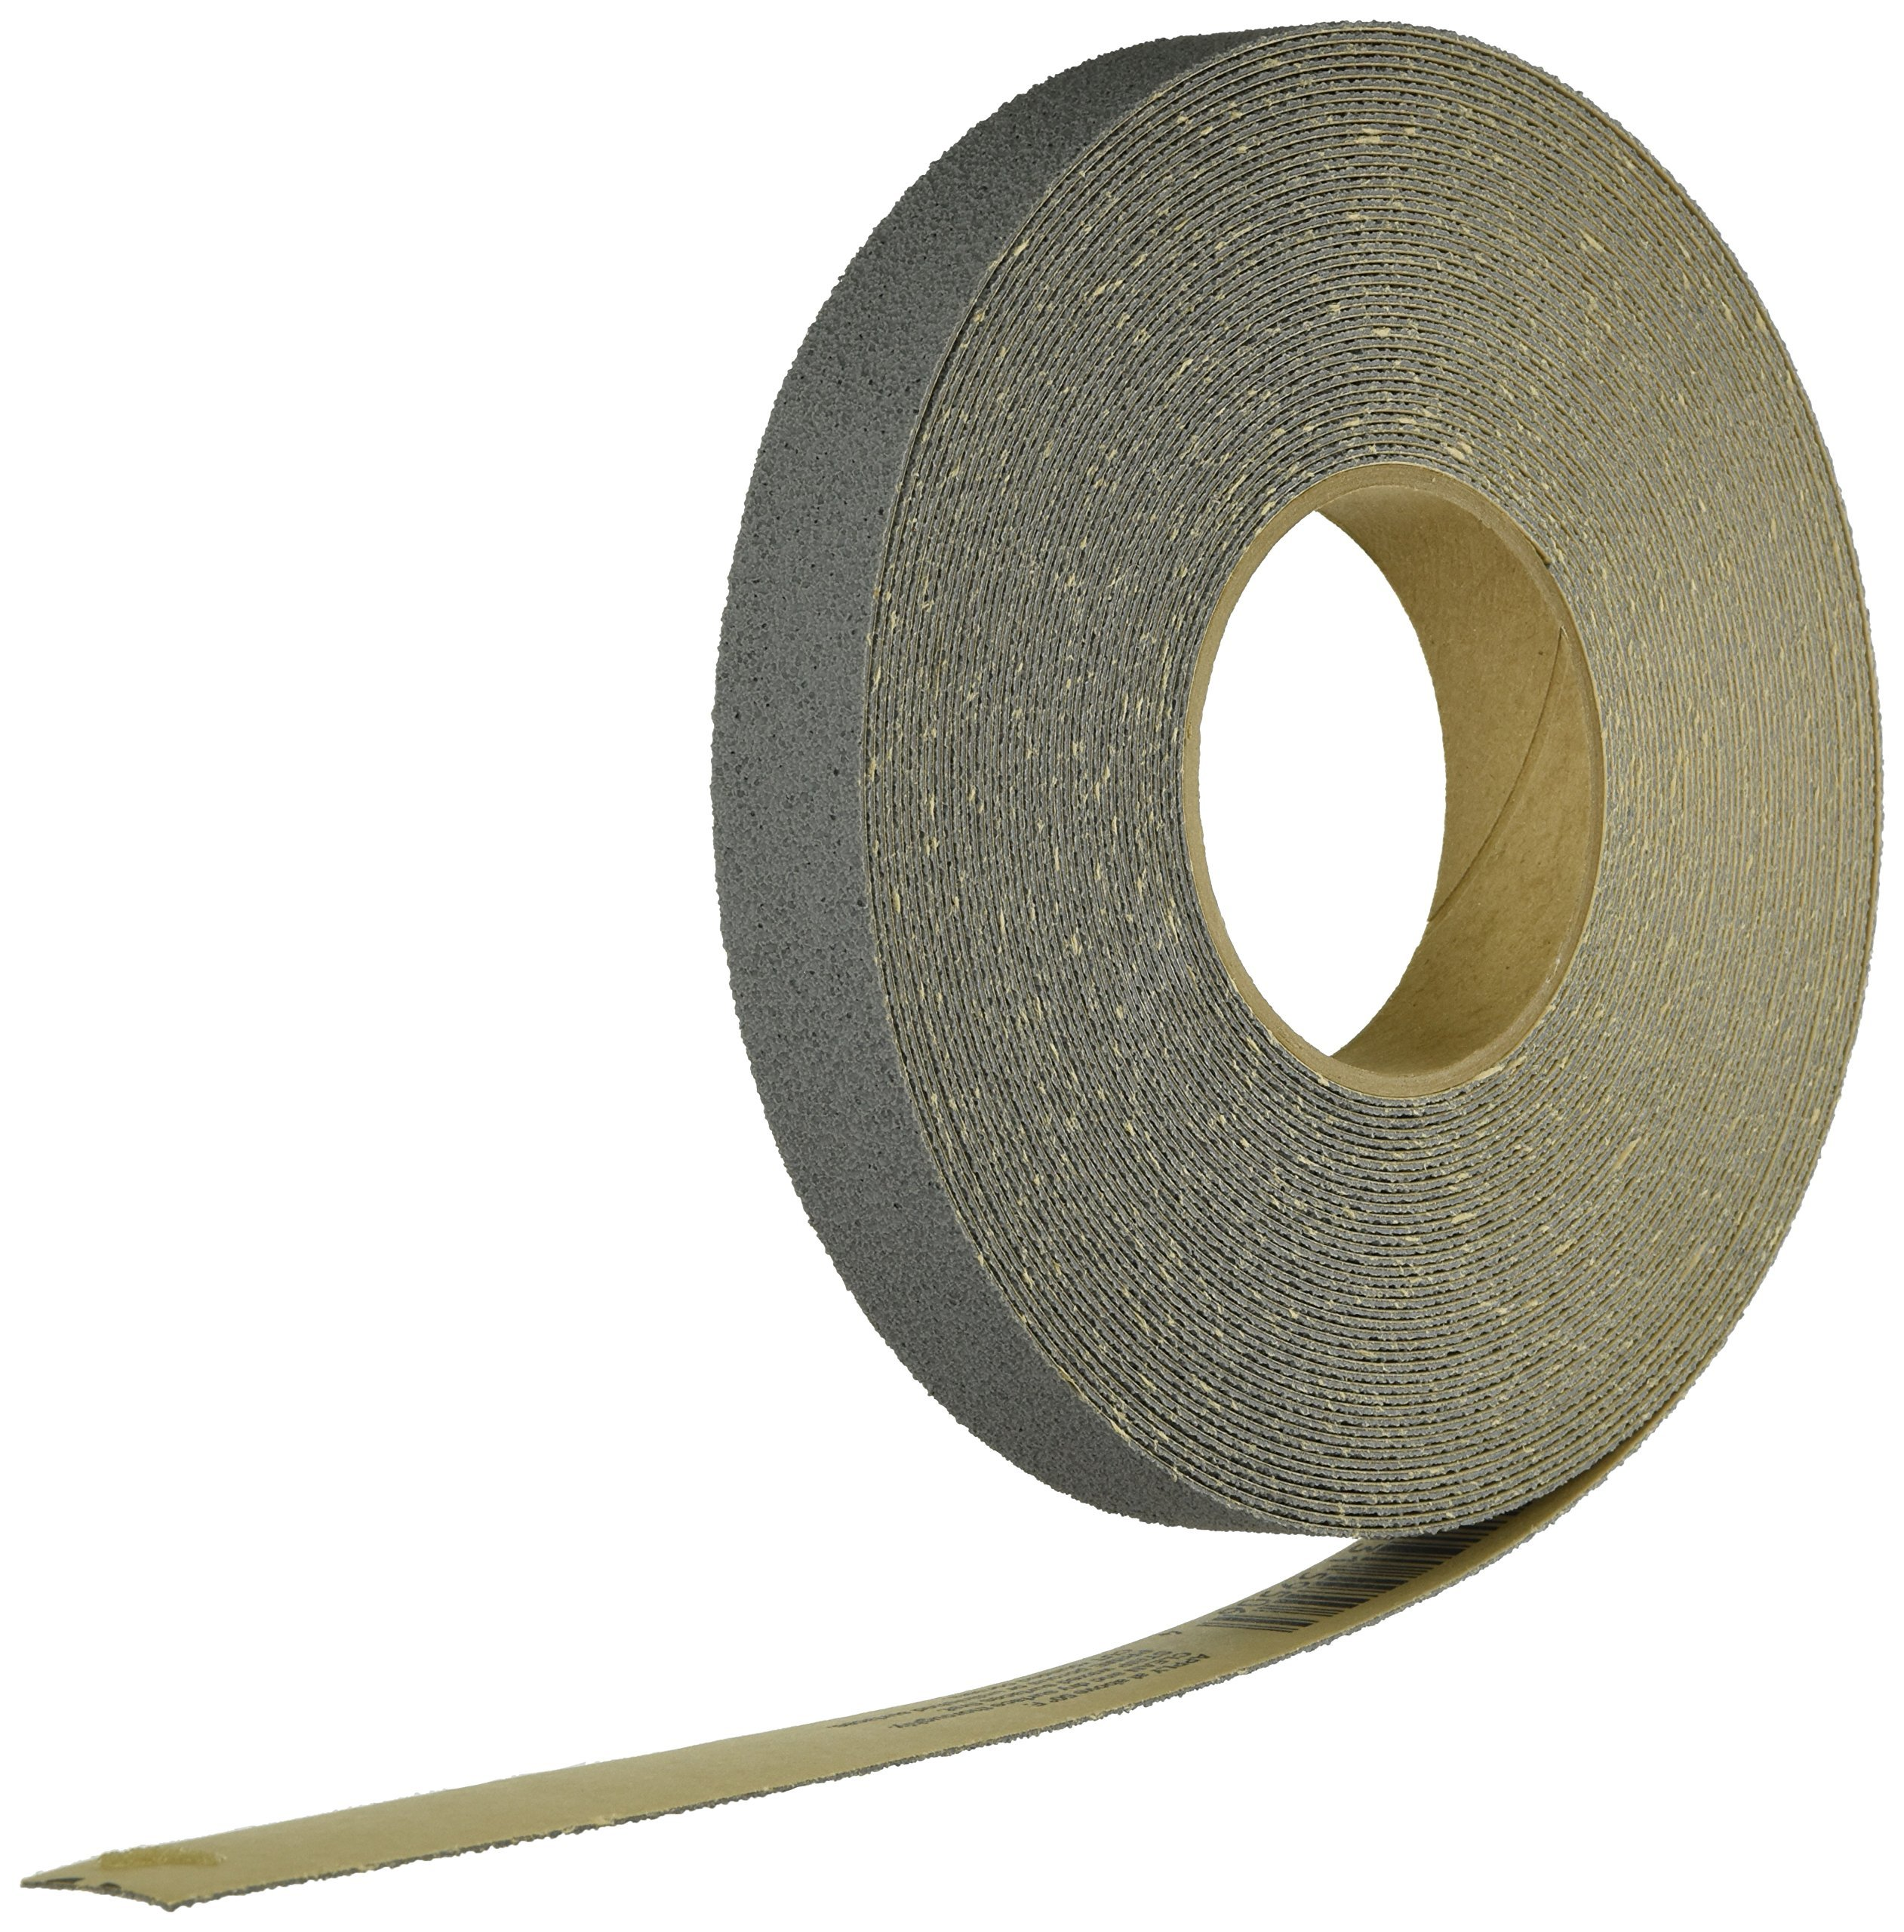 3M 7739NA Safety-Walk Medium Duty Tread - Gray 1-Inch-by-60-Foot Bulk Roll by 3M